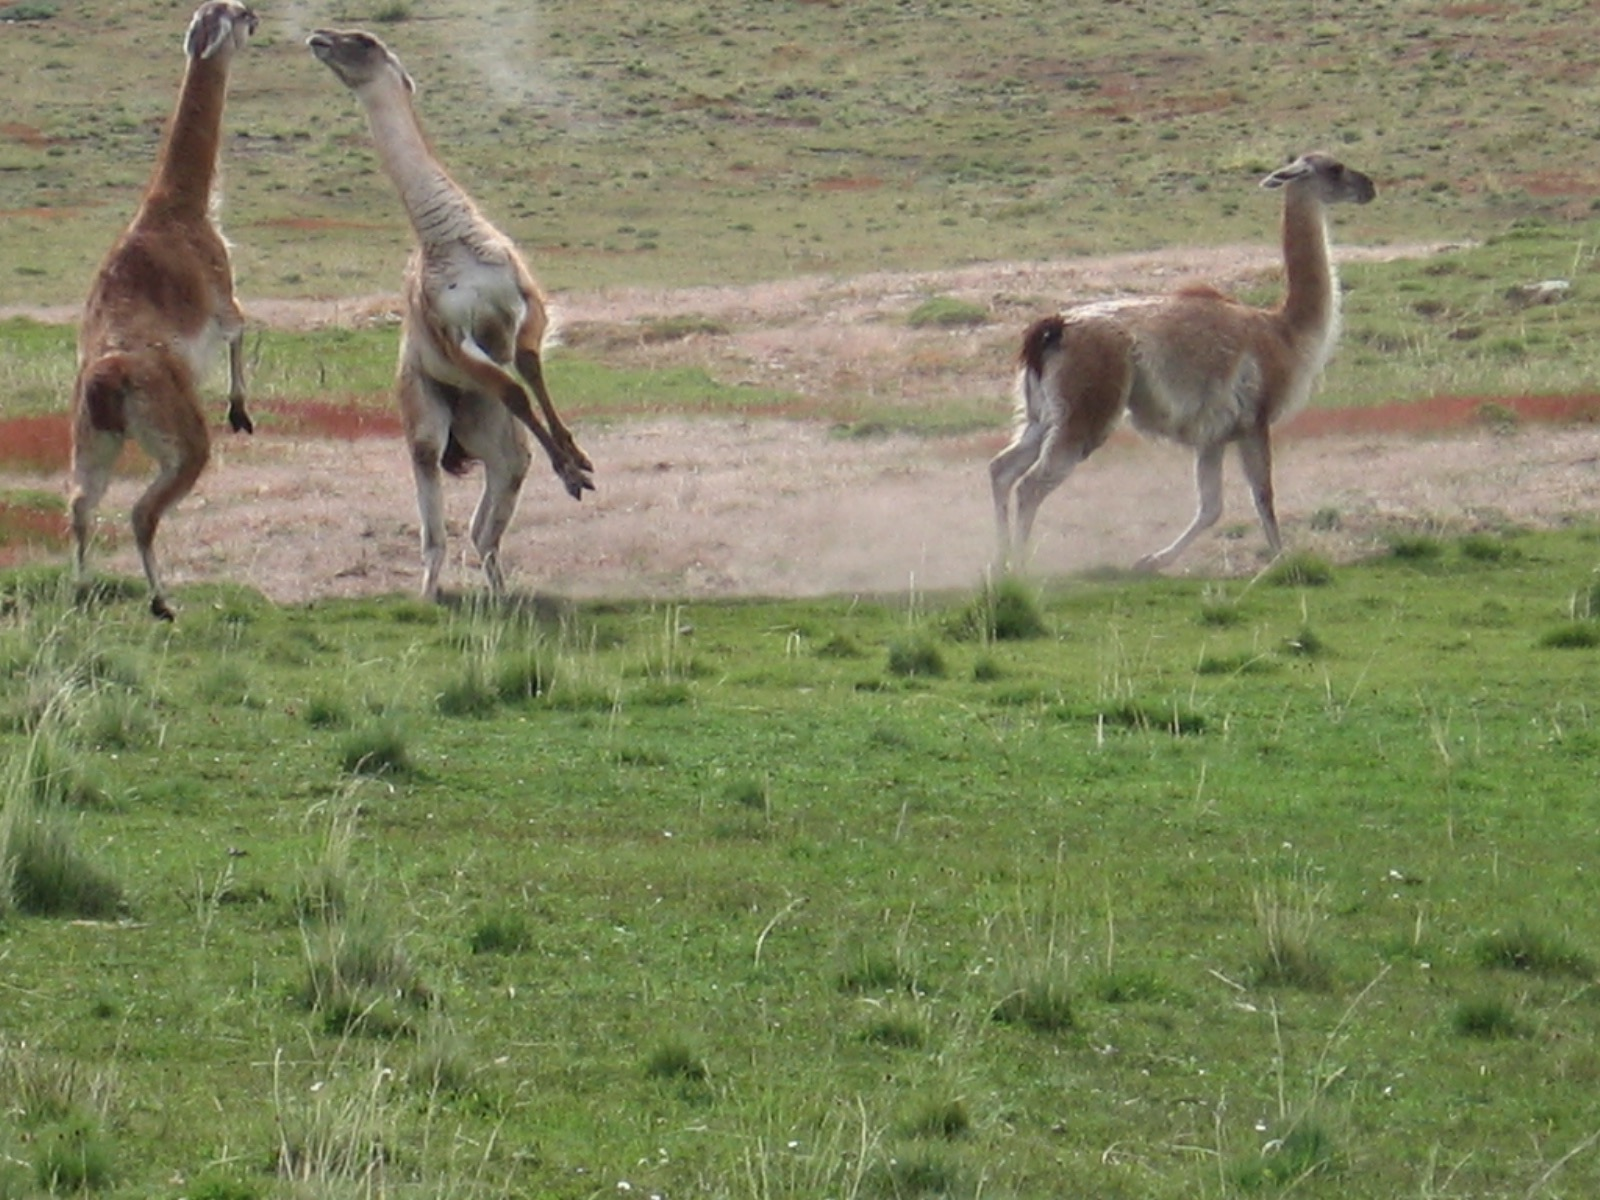 Two male guanacos spar over a desirable female. She seems unimpressed. <em>Photo credit: Luis